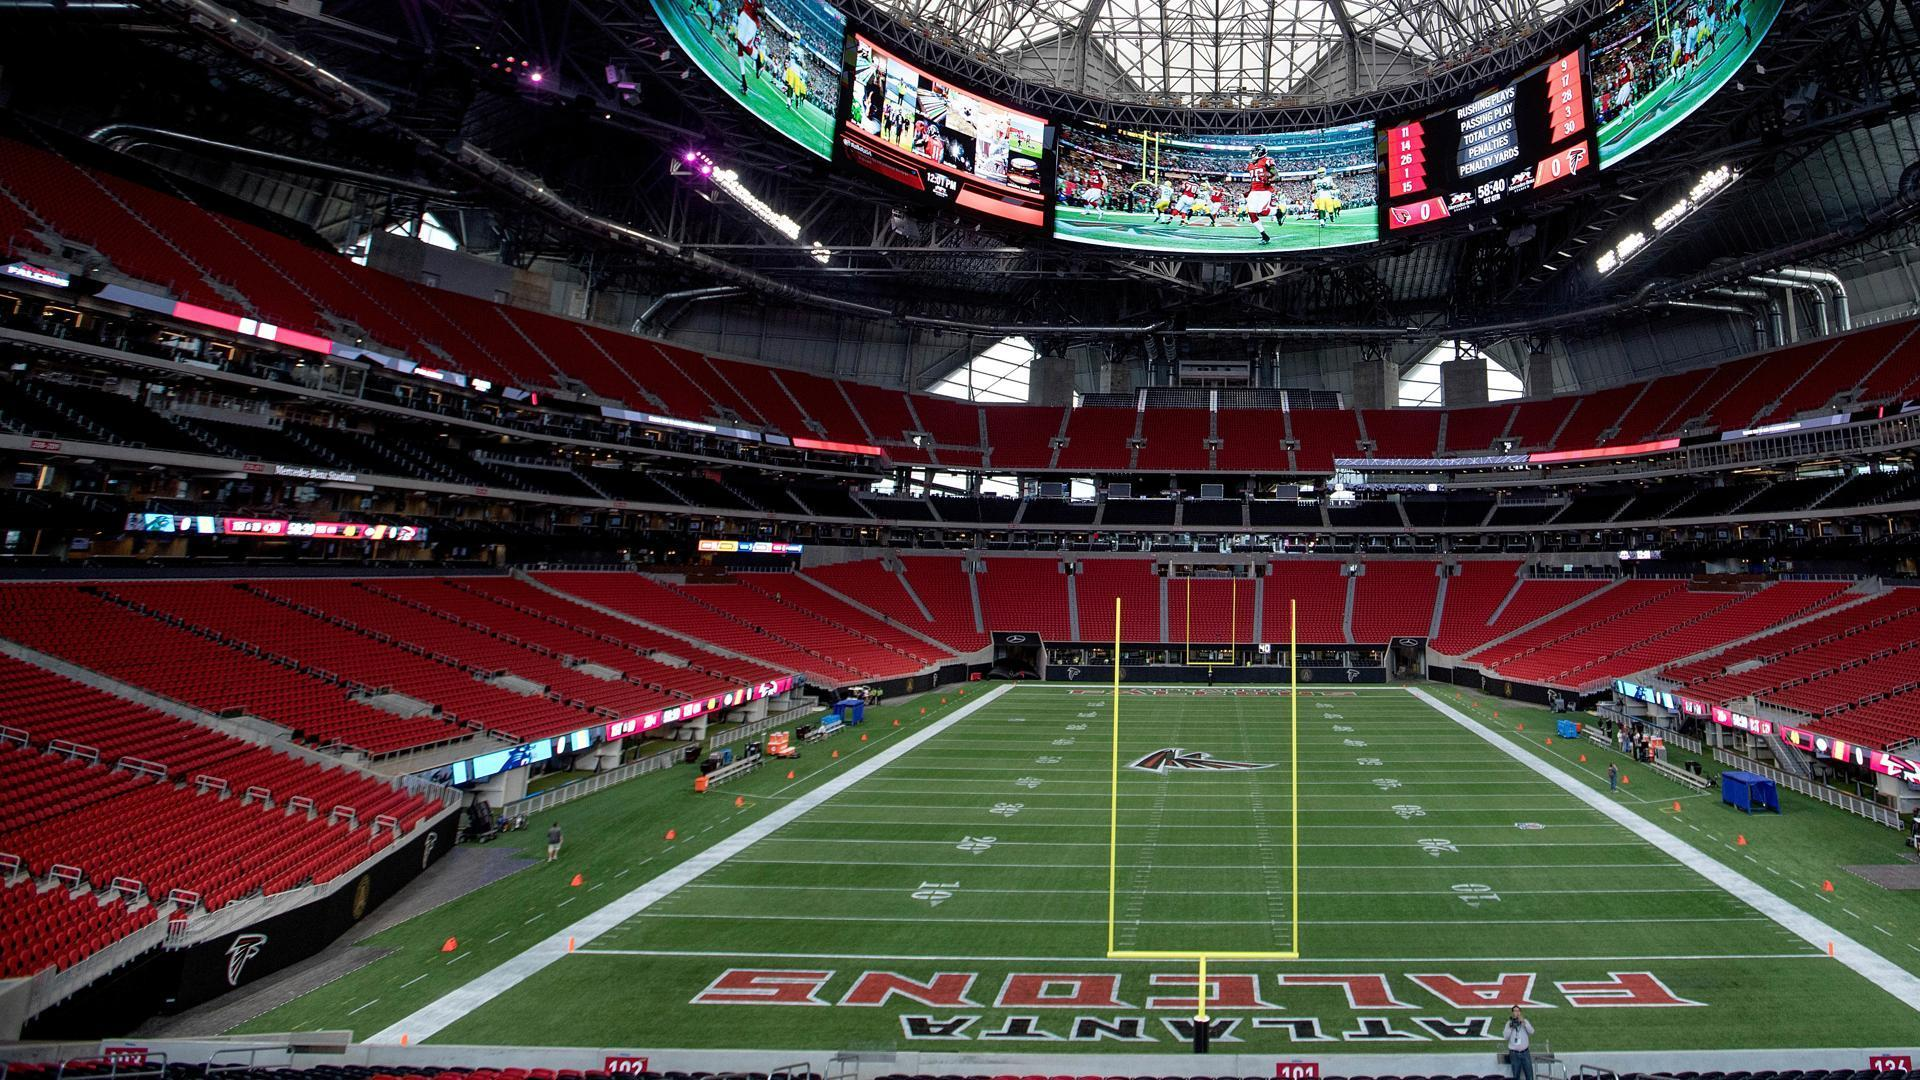 The #Falcons' new stadium has a Chick-fil-A, which won't open on Sundays. https://t.co/jNqMPrpiGm https://t.co/rWlTCObjKl